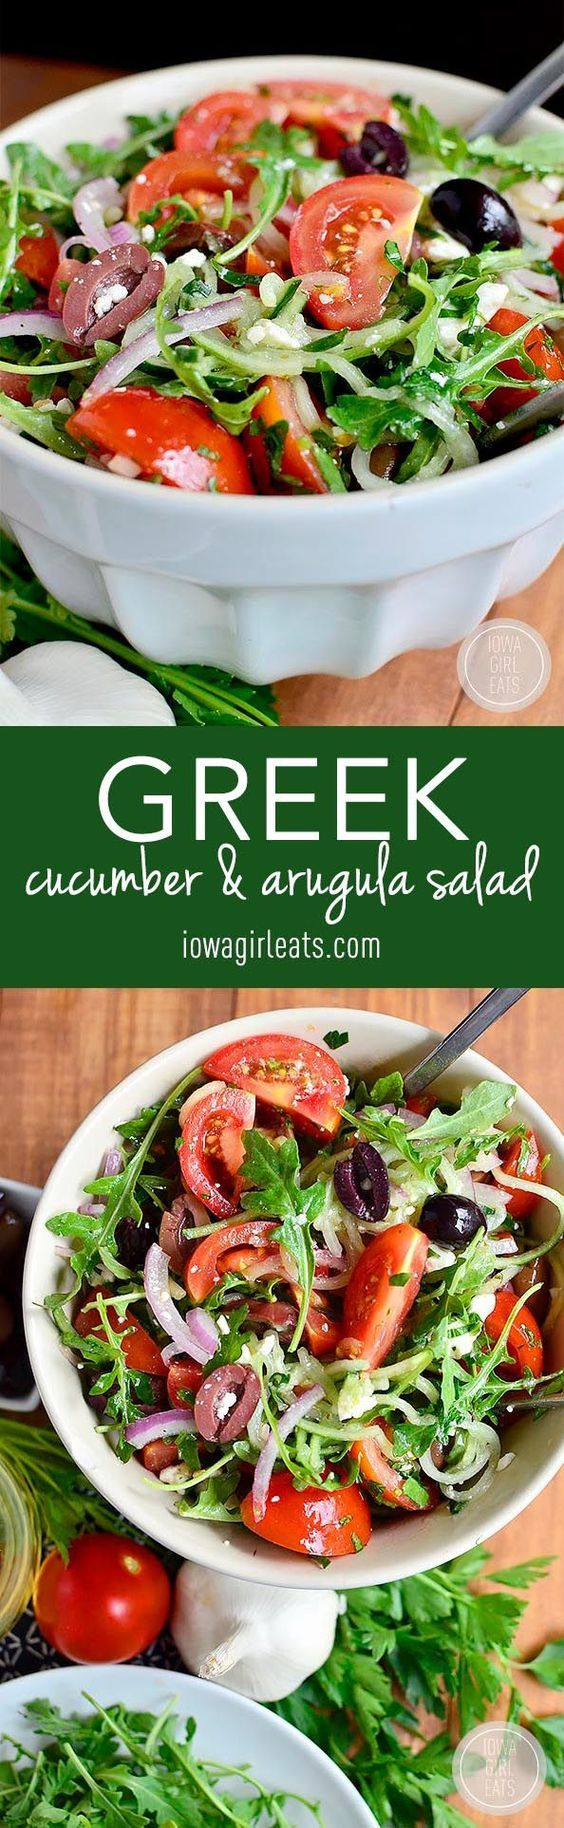 Greek Cucumber and Arugula Salad is fresh and light. Perfect as a light side with dinner or taking to a party or pot luck! | iowagirleats.com